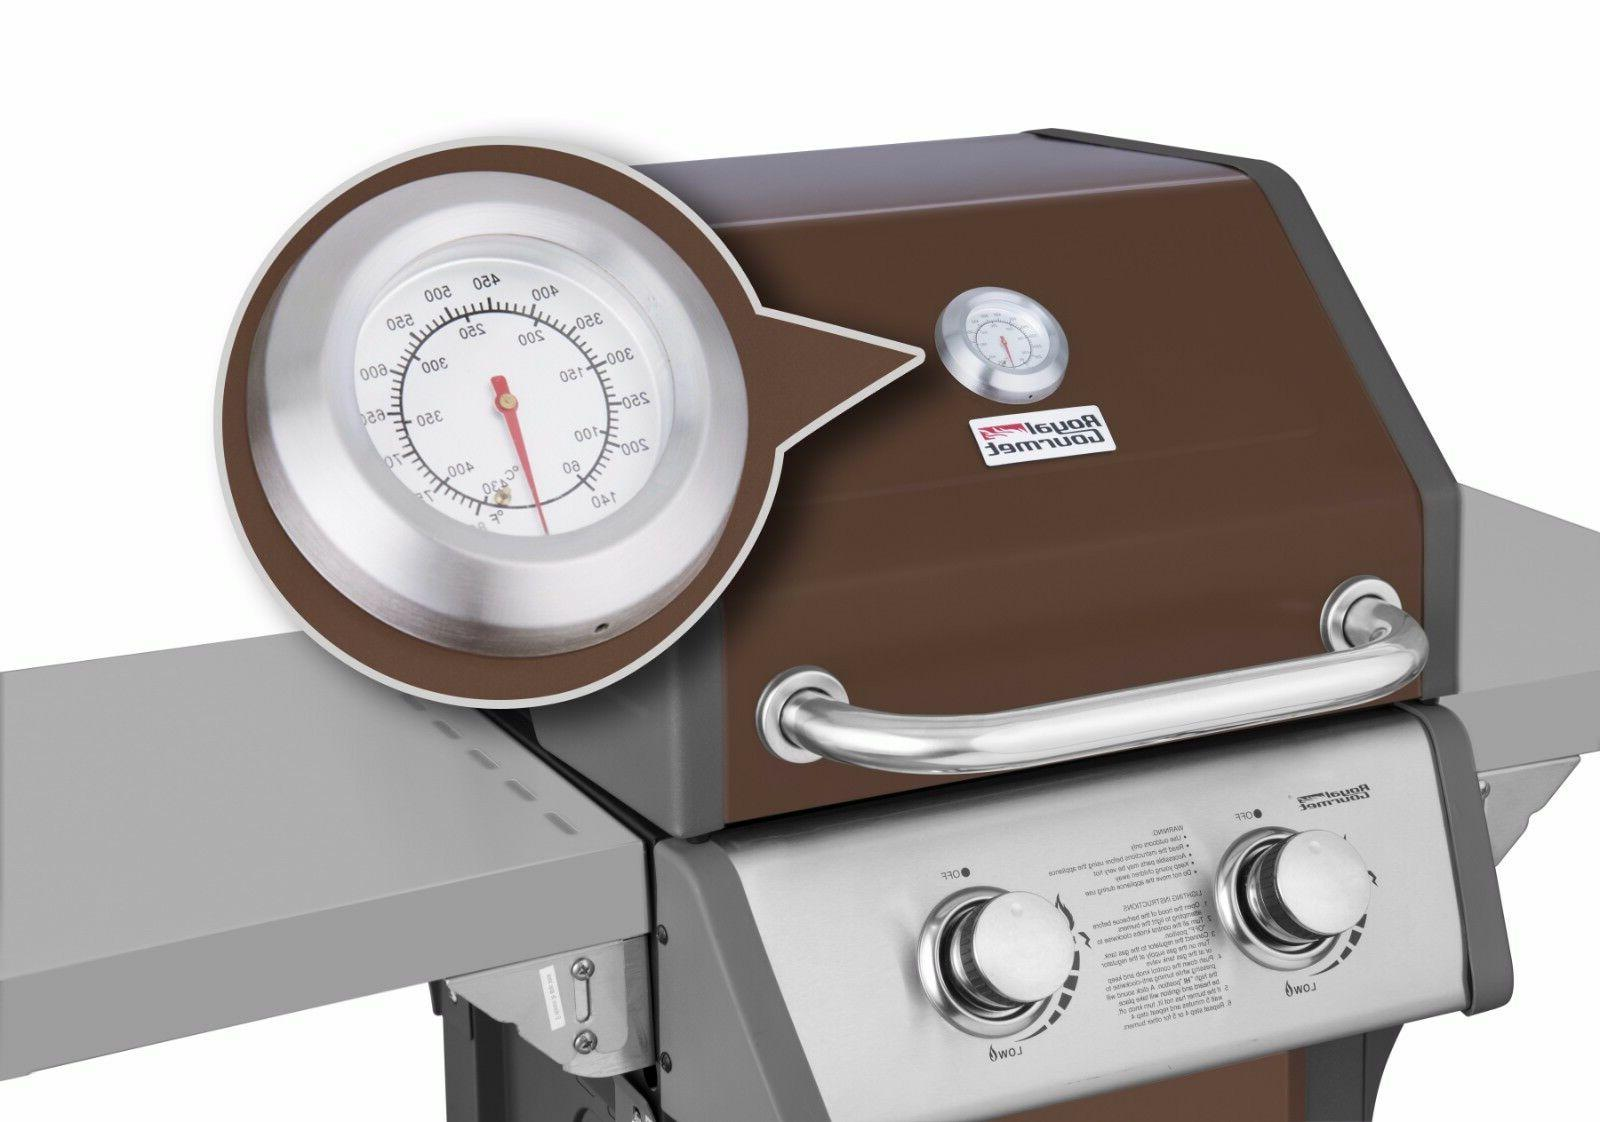 Royal Gas Grill 2-Burner Patio BBQ Cooking